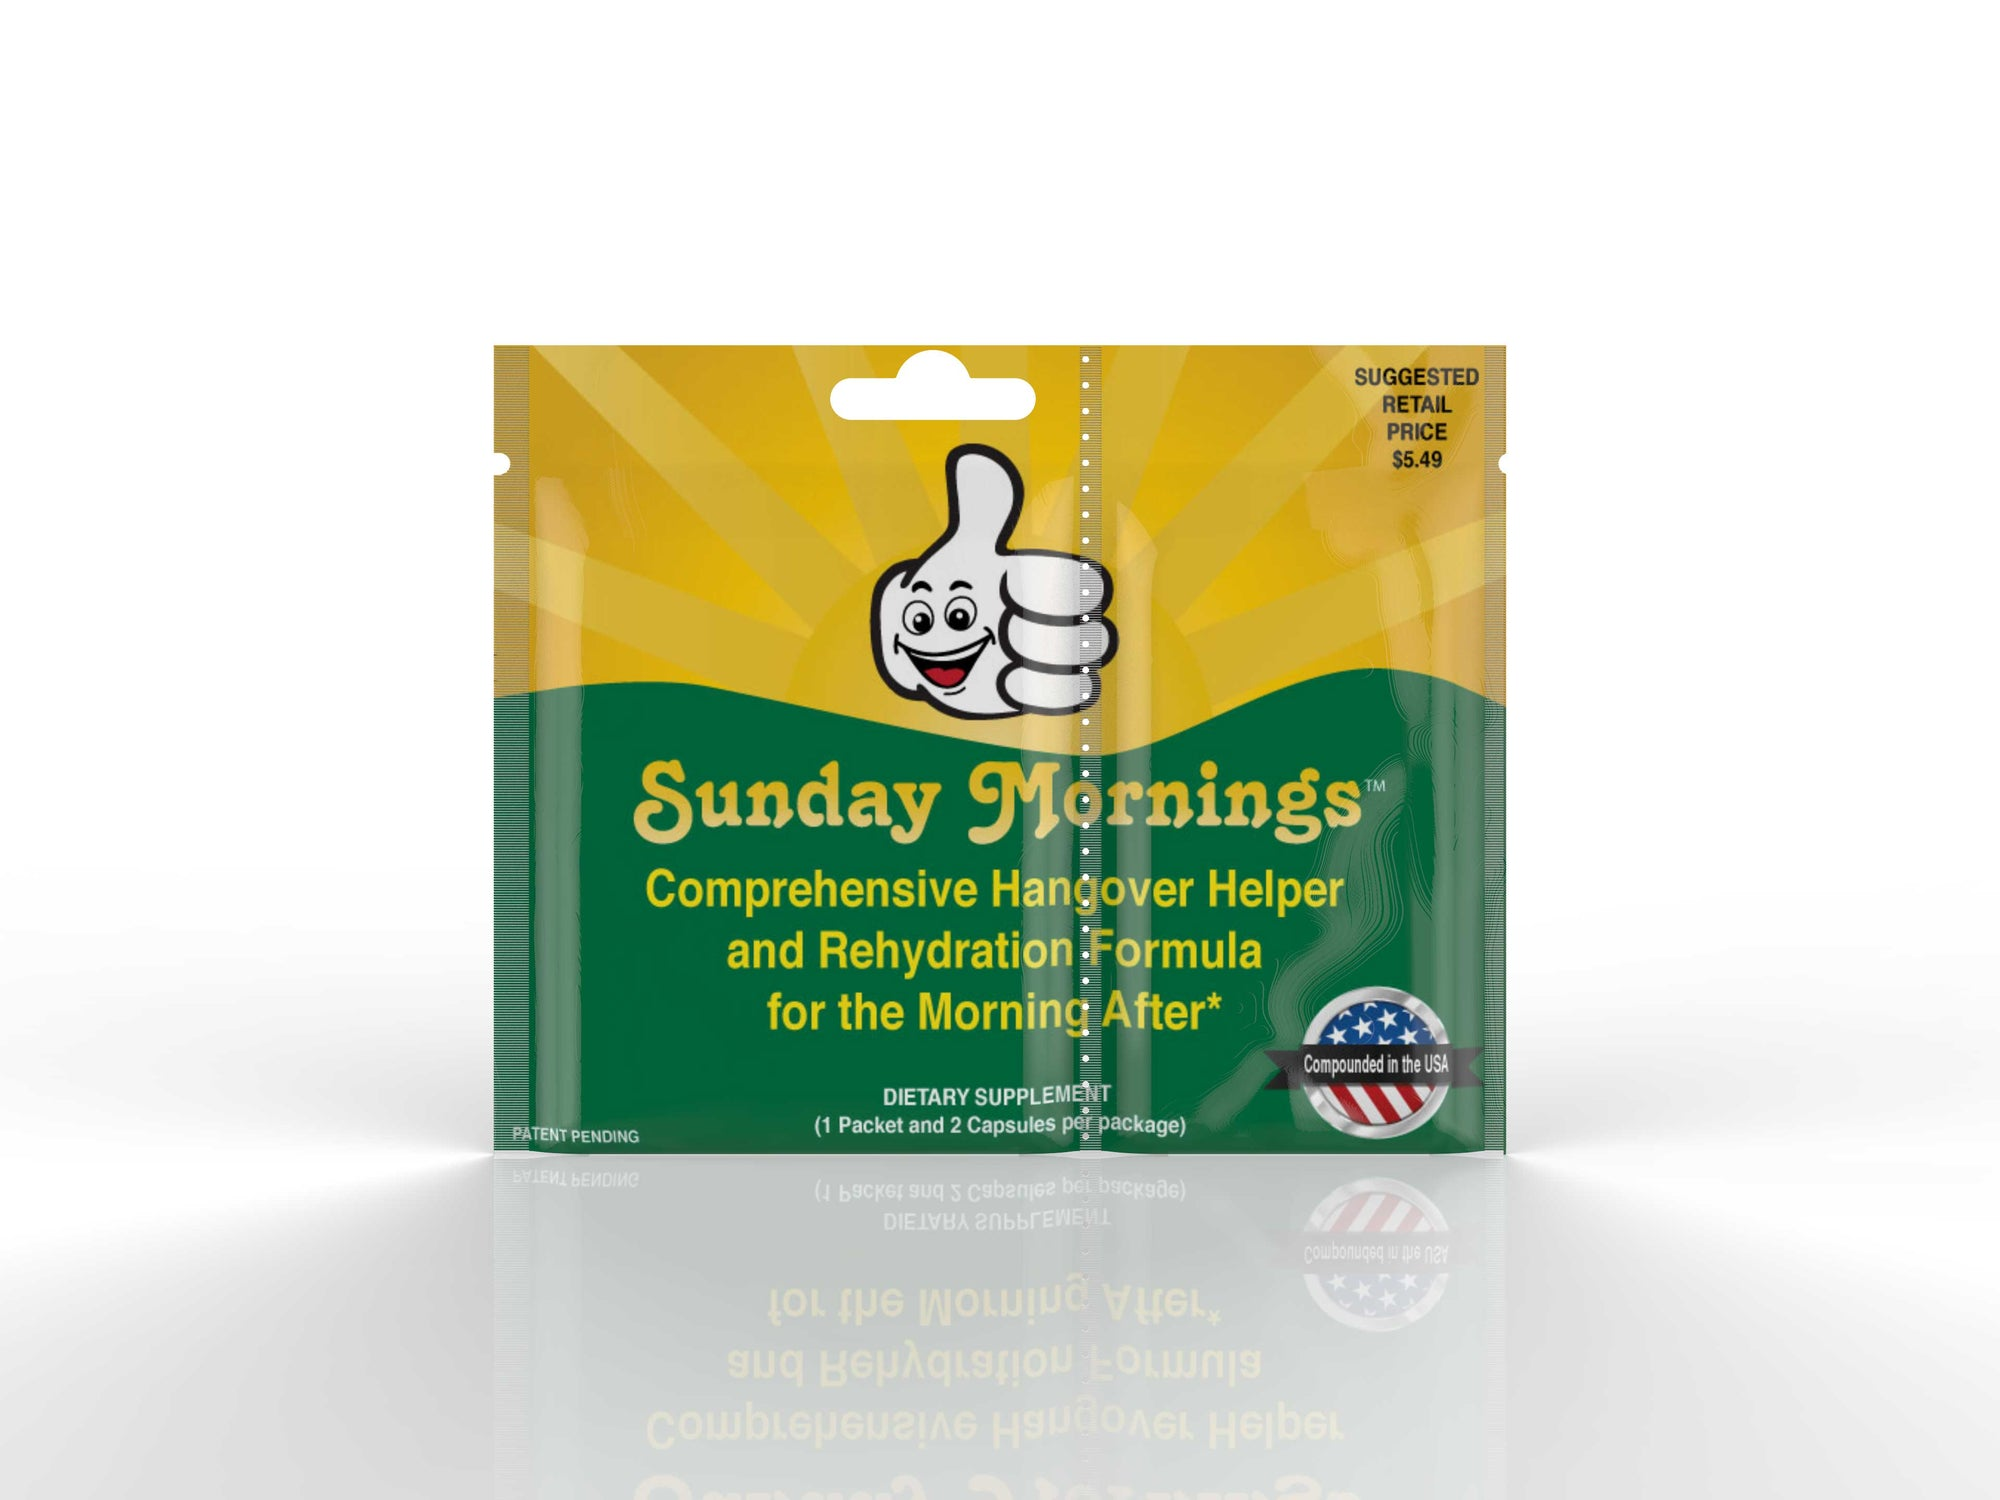 Free Sample-Just Pay Shipping - Sunday Mornings Hangover Helper